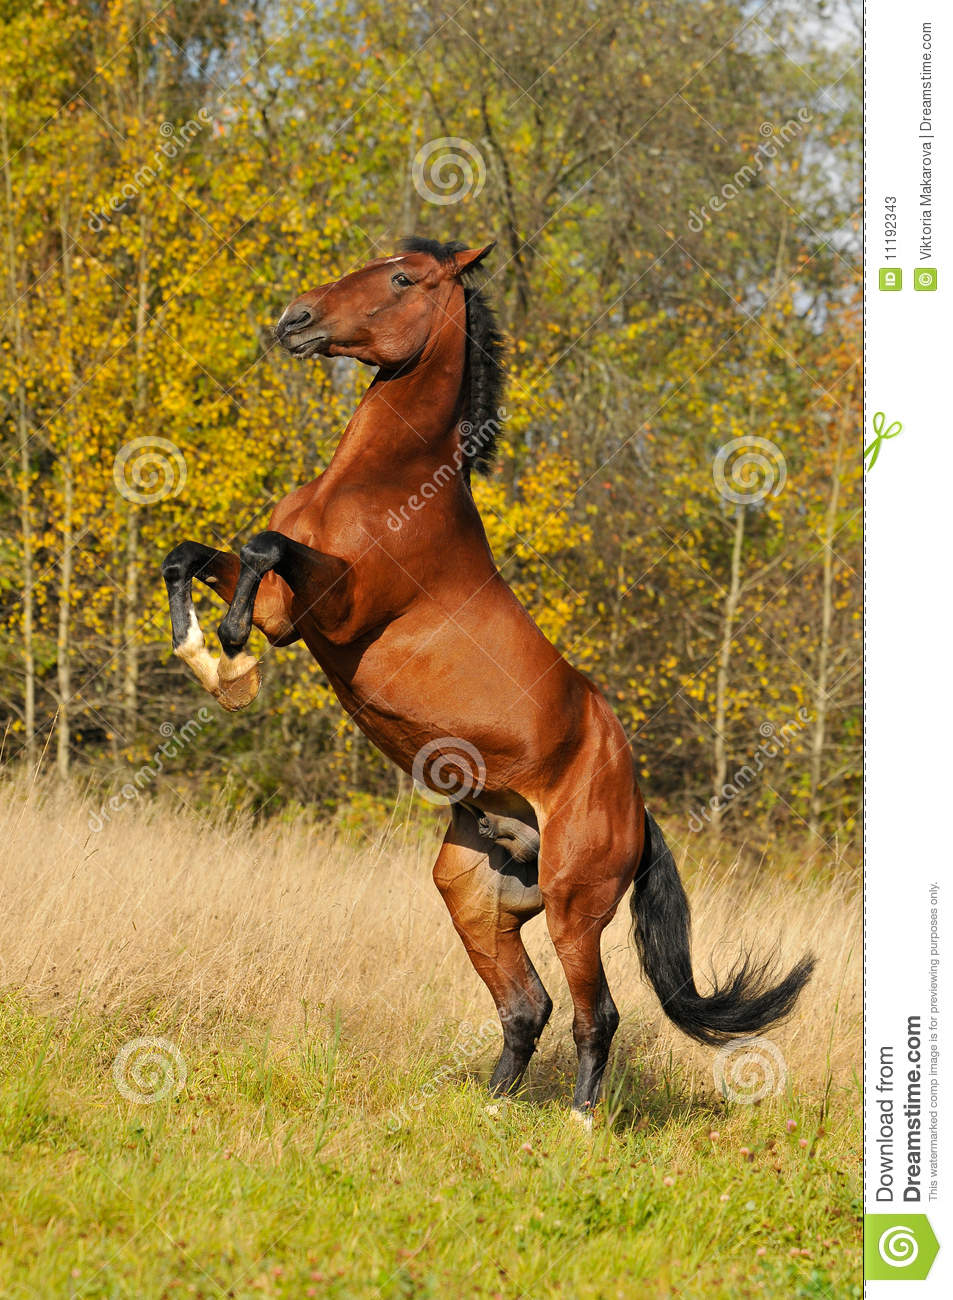 Bay Horse Stallion Play On Grass In Autumn Stock Photos - Image ...